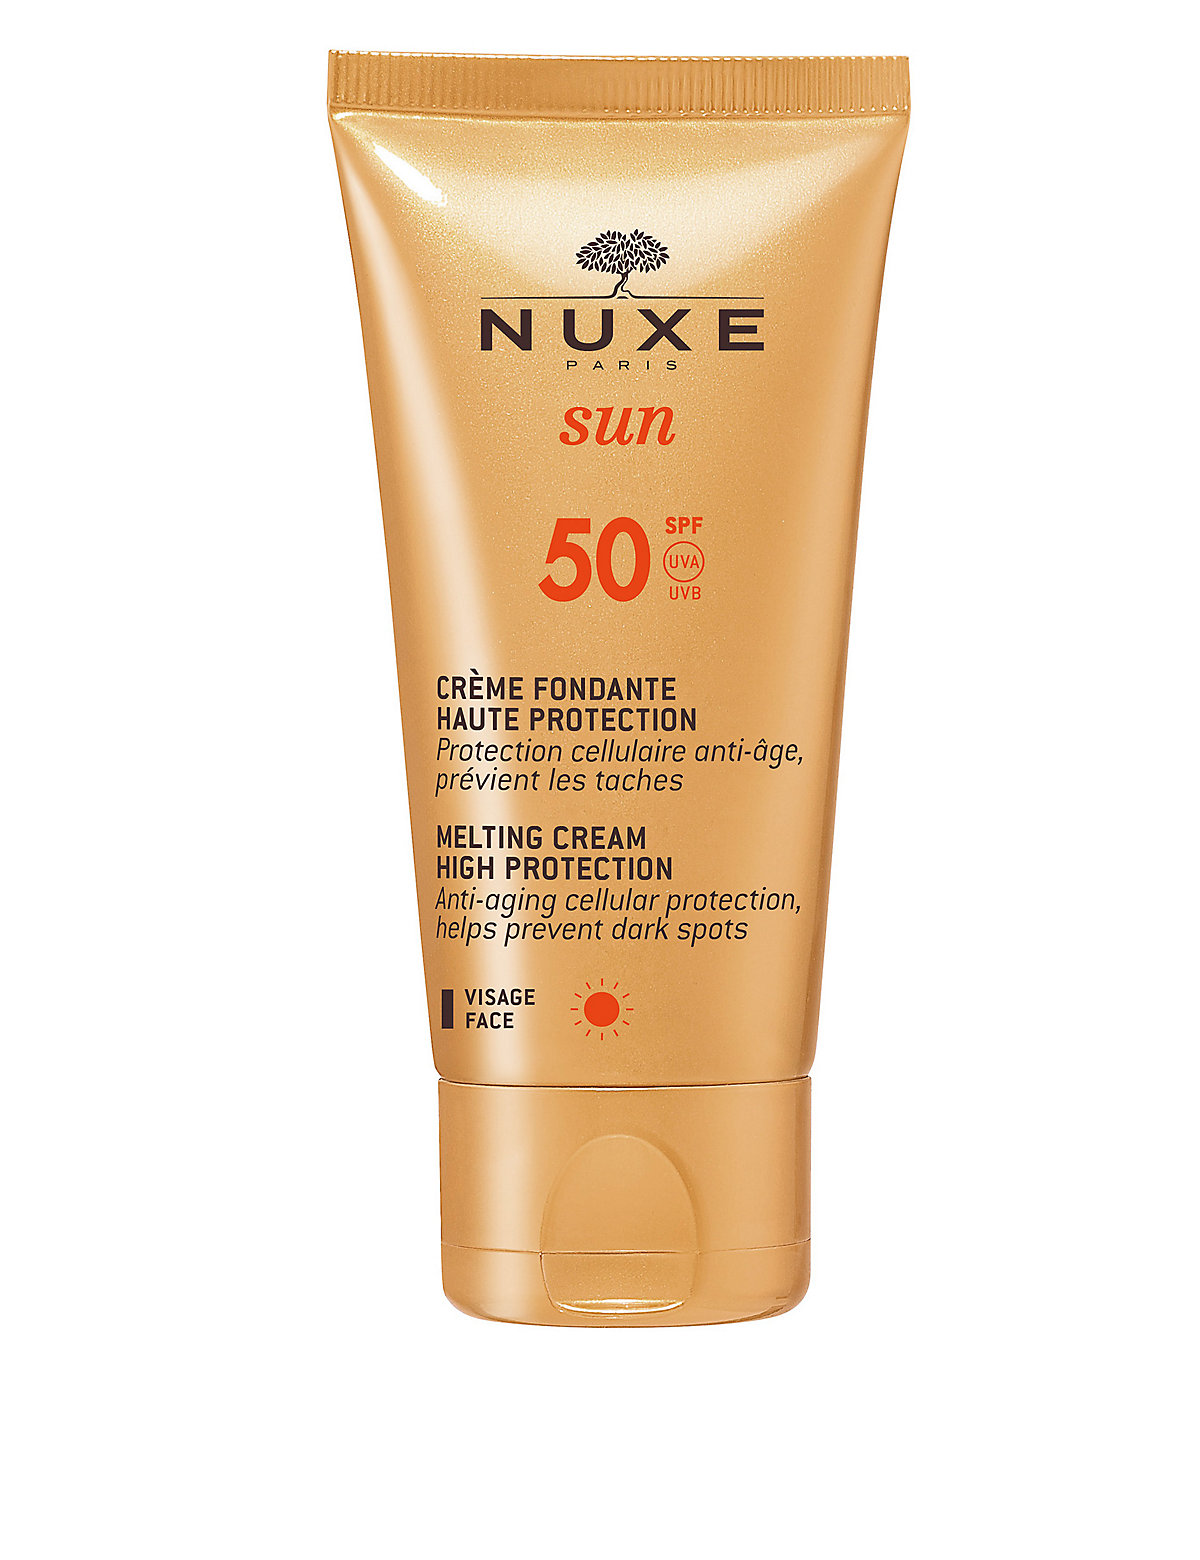 NUXE Delicious Cream For Face SPF 50 50ml